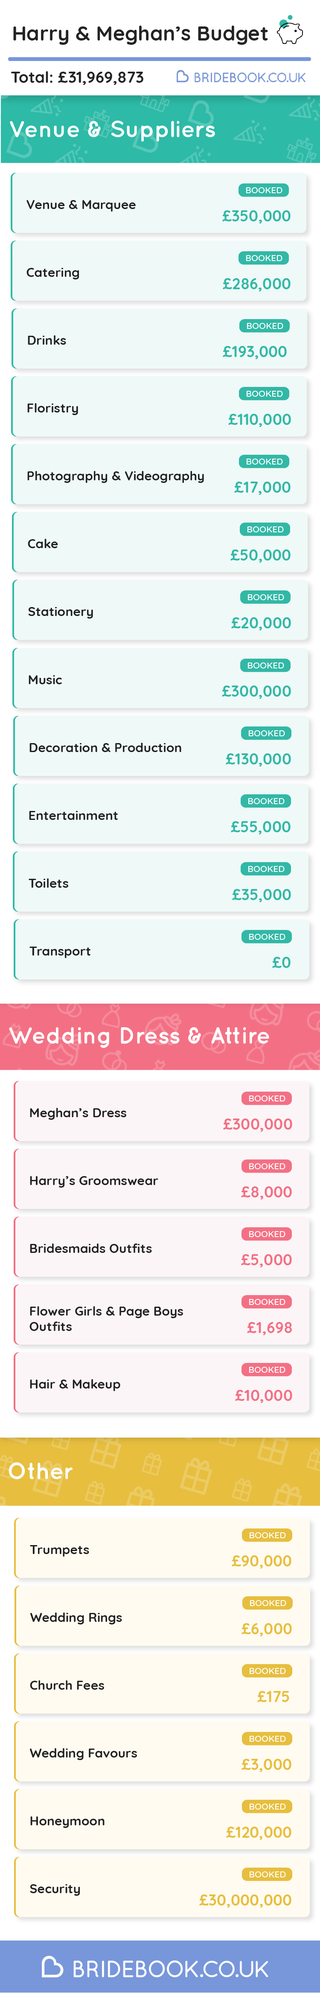 Royal Wedding Cost.How Much Will Prince Harry And Meghan Markle S Wedding Cost